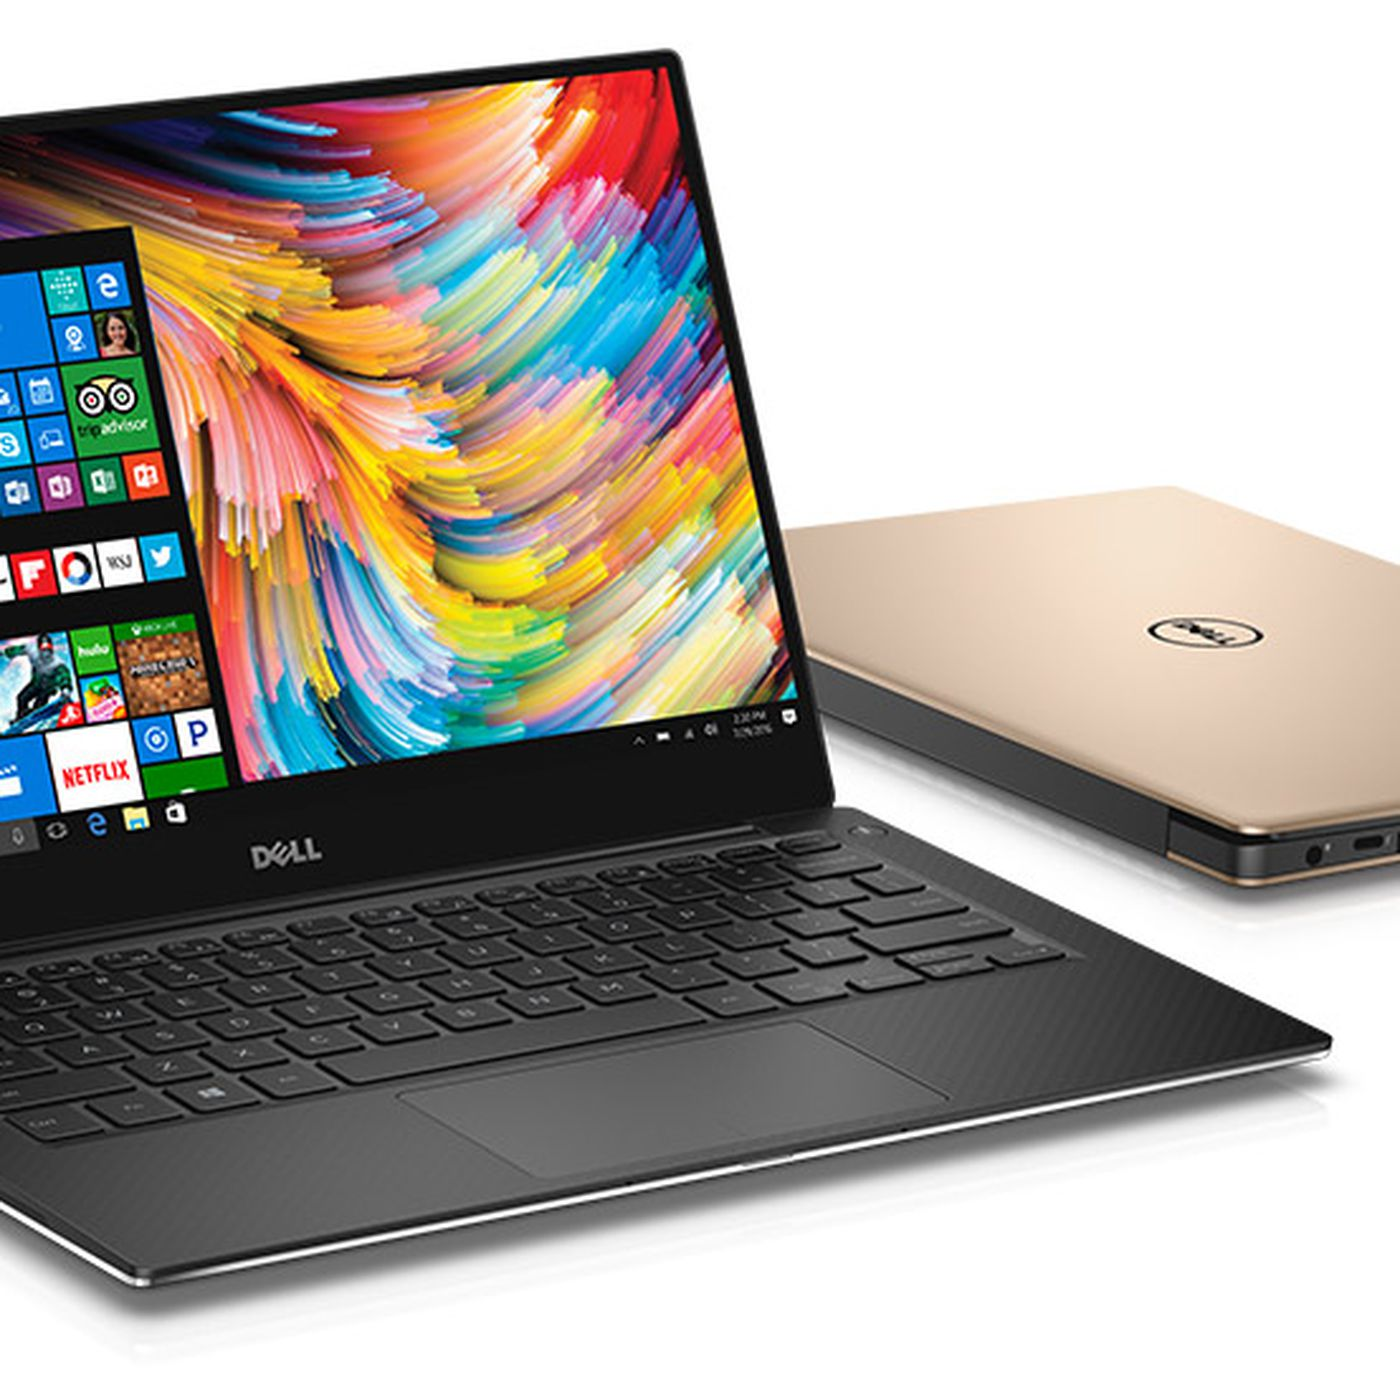 You can now add a $25 fingerprint sensor to Dell's latest